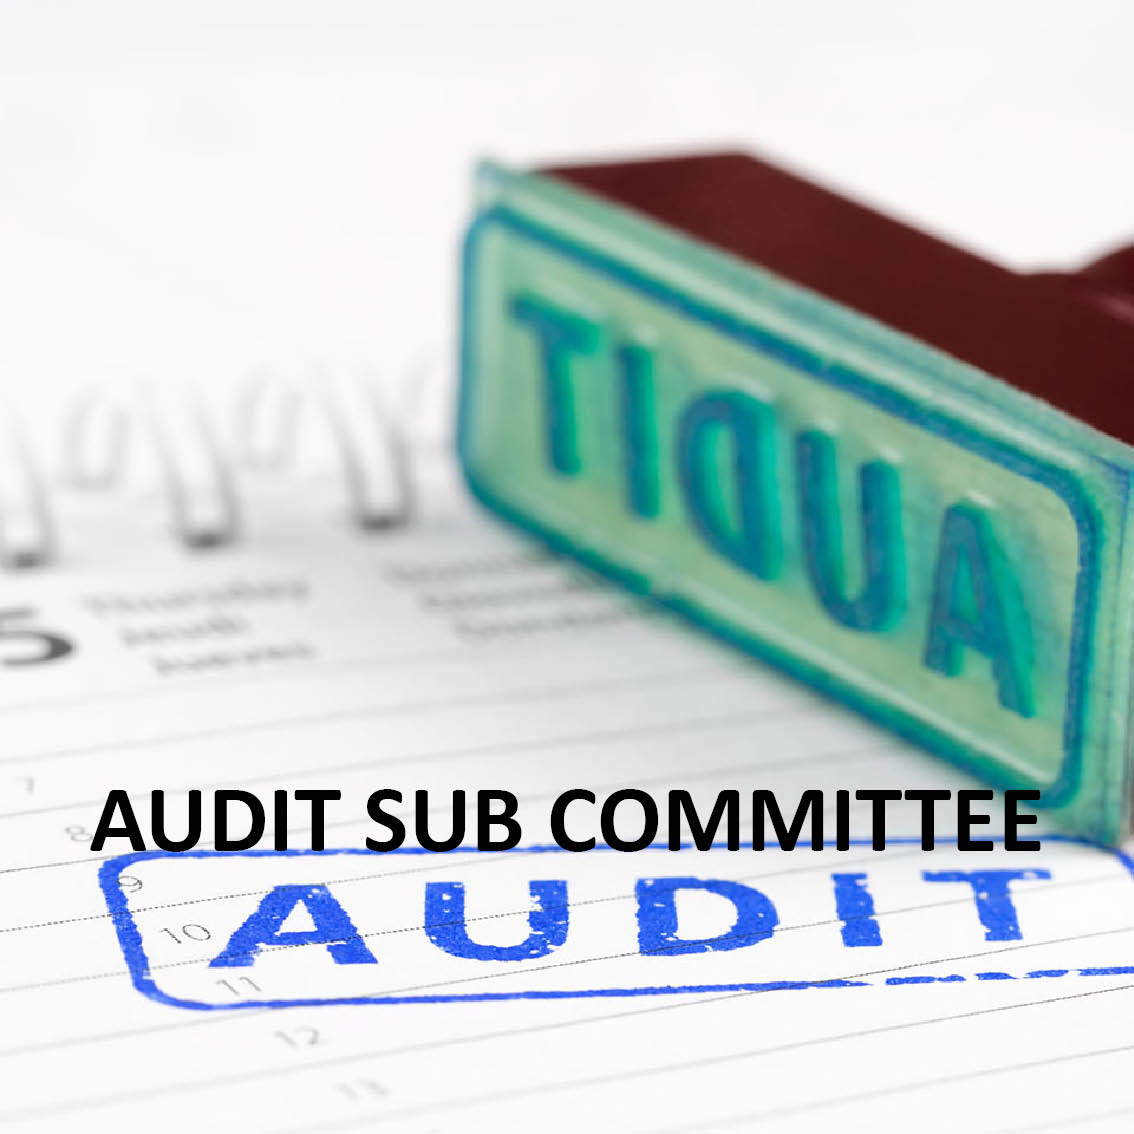 Hyerlink to the Audit Sub Committee meetings